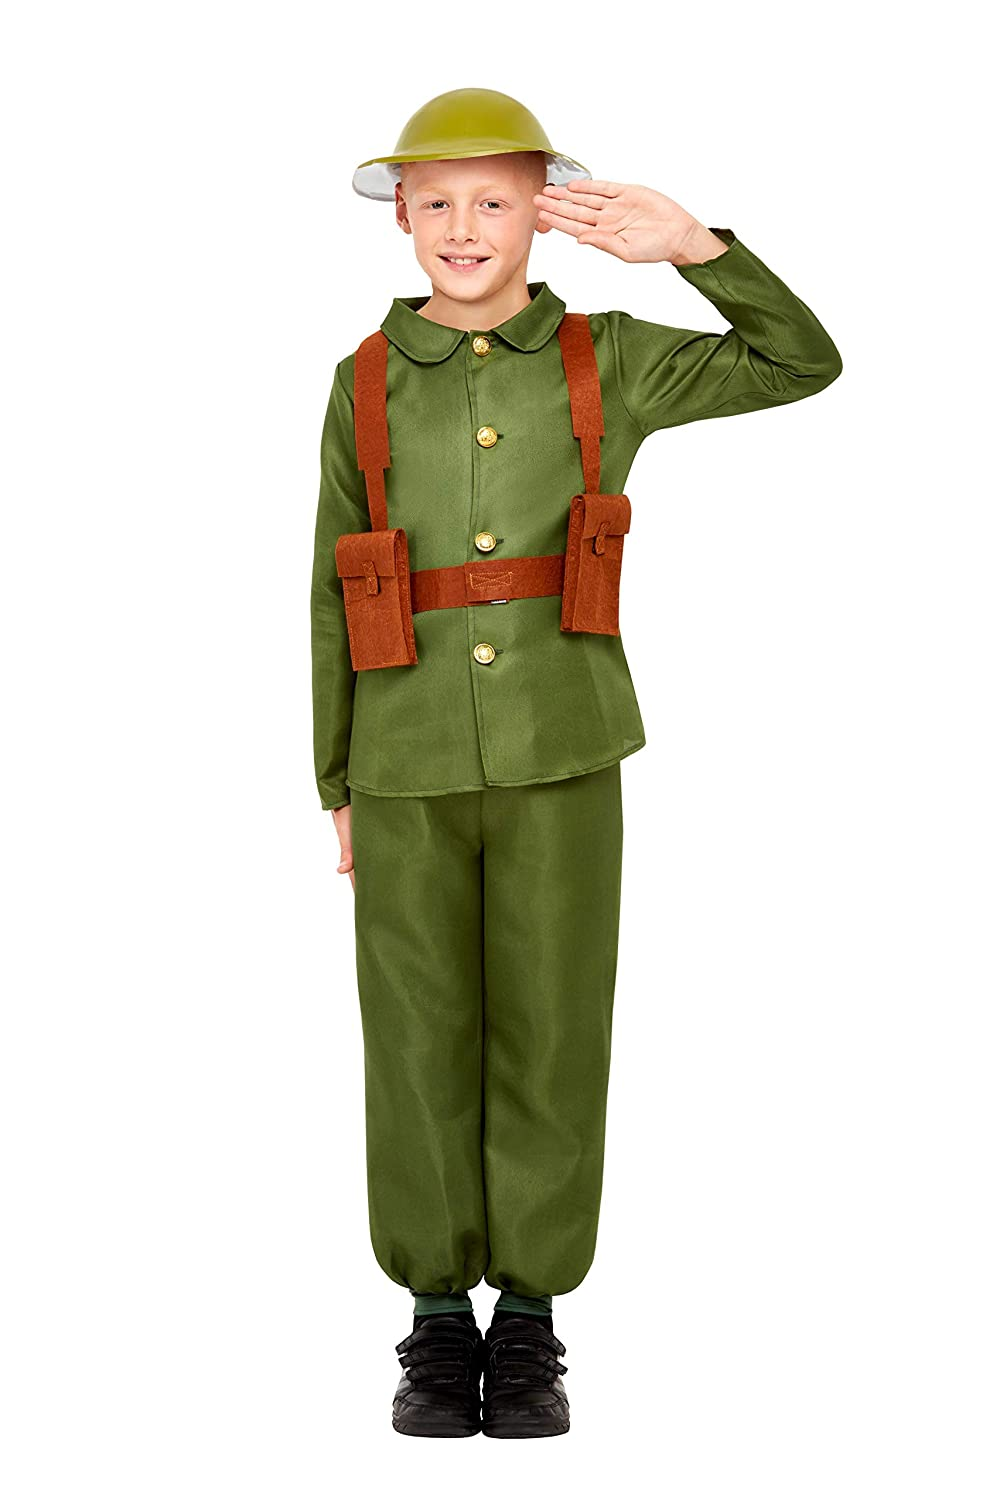 Childrens Army Officer Costume Boys Soldier Fancy Dress Uniform New by Smiffys